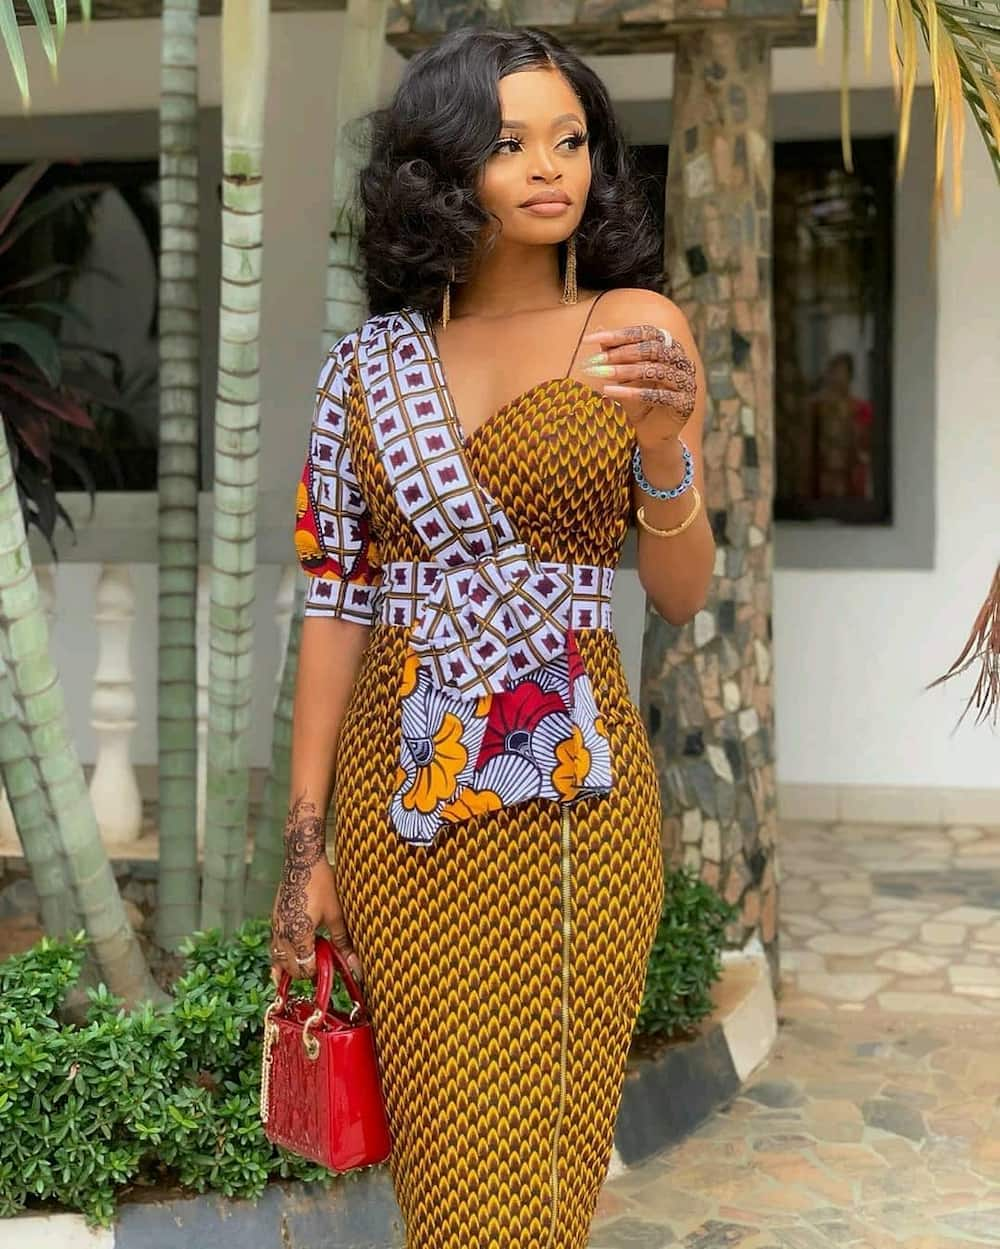 Top 20 Latest Ankara Styles Designs 2019: Latest Ankara Styles For Men And Women In 2019